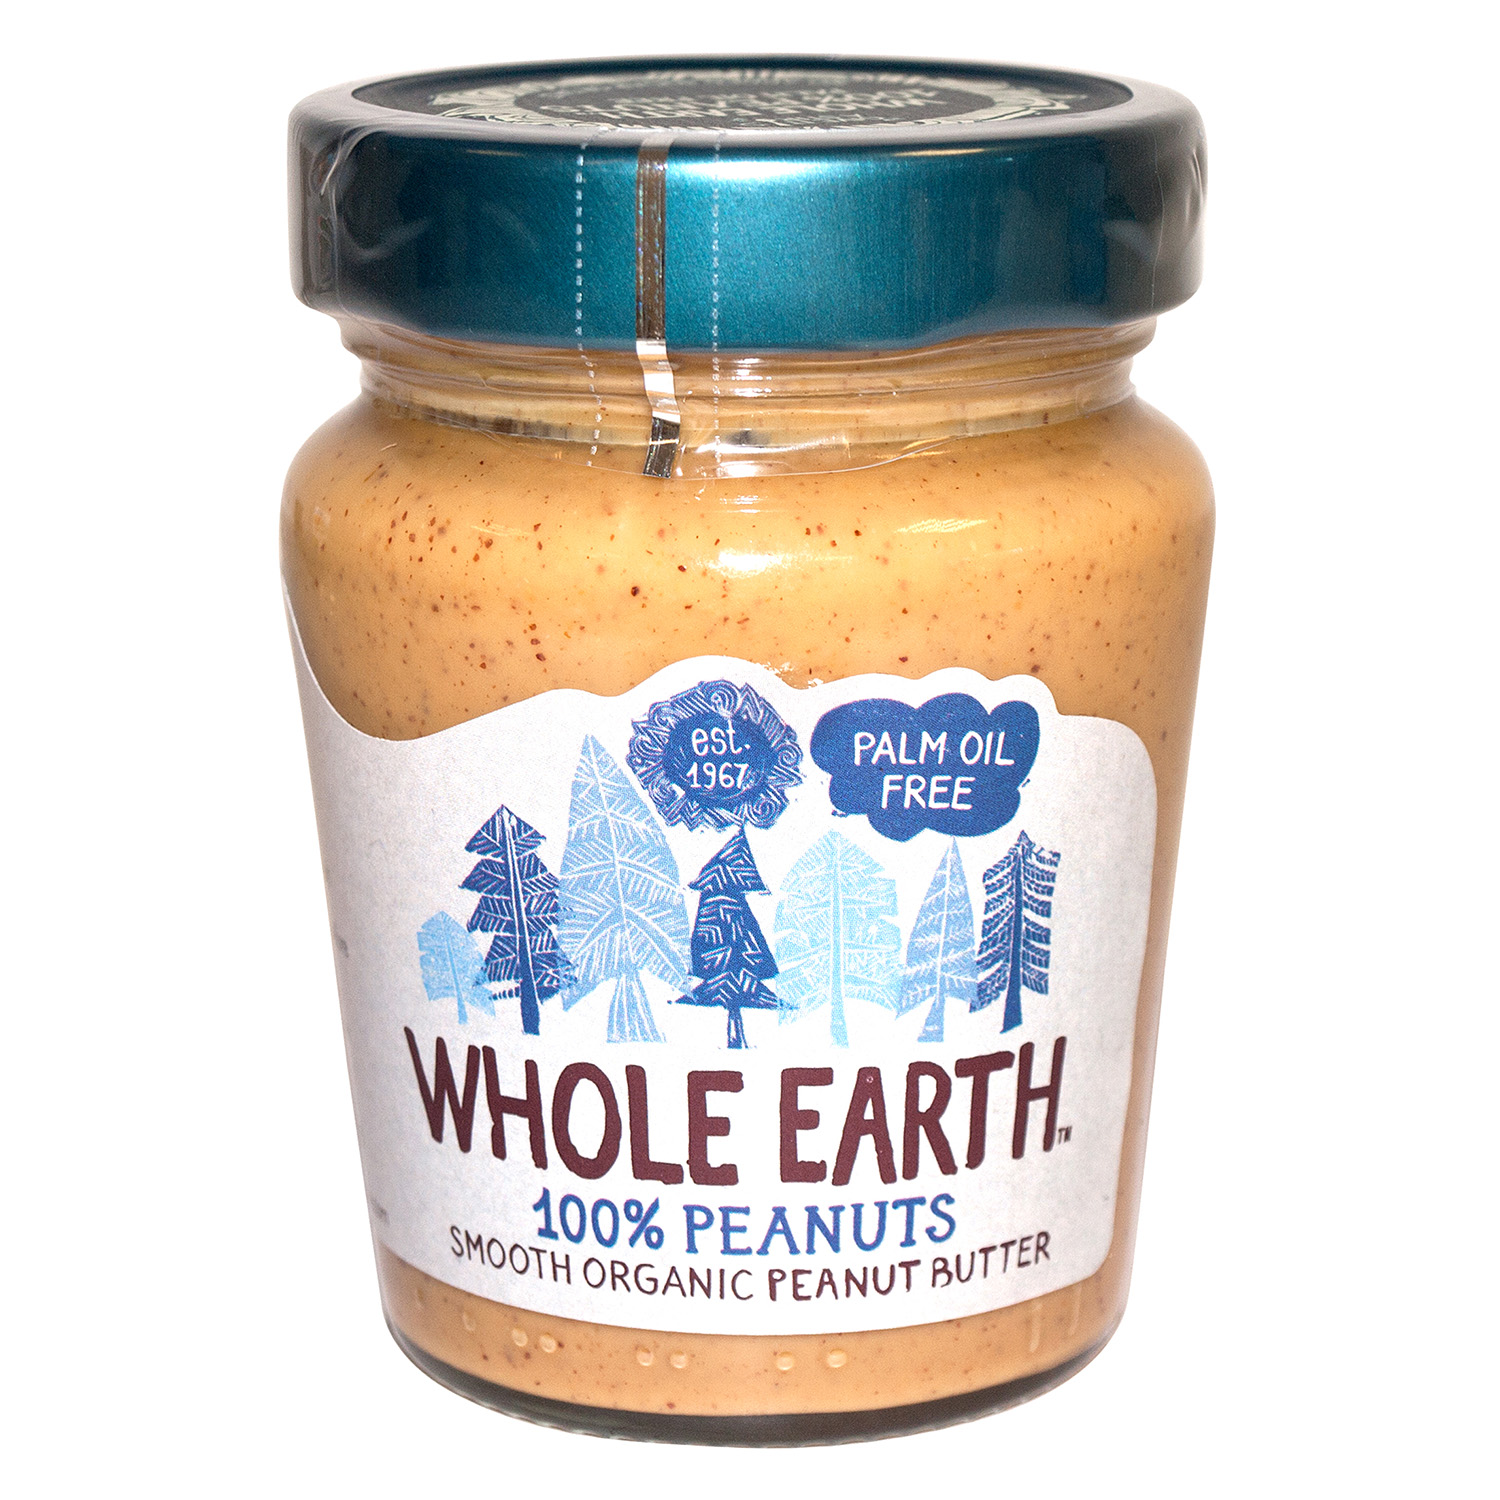 Crema de cacahuete Whole Earth 227 g.